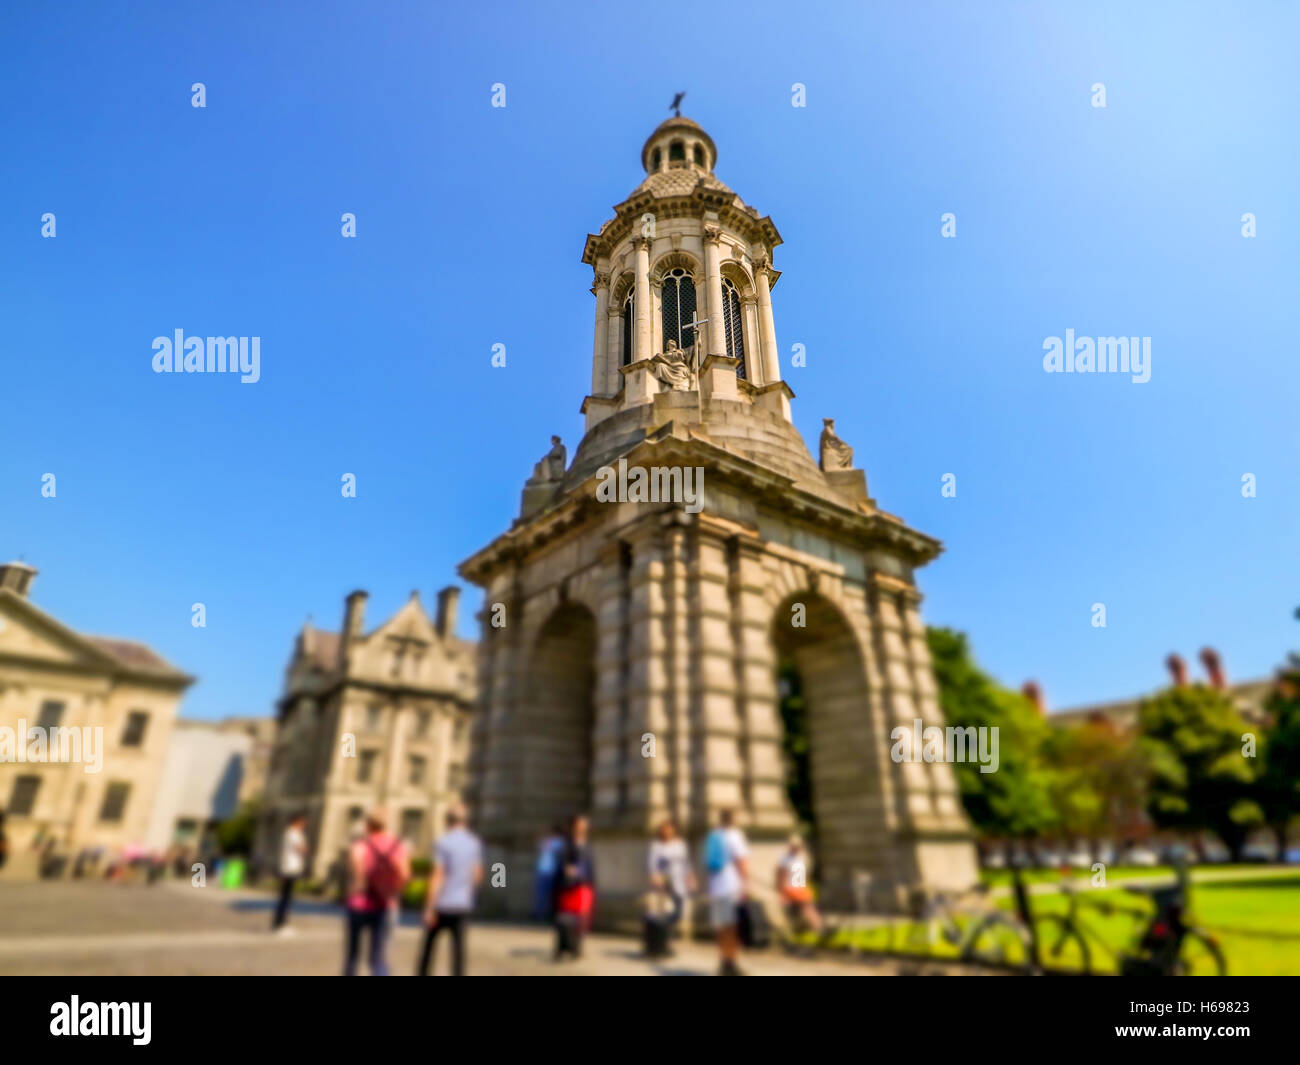 Trinity College bell tower with students going to class - Stock Image